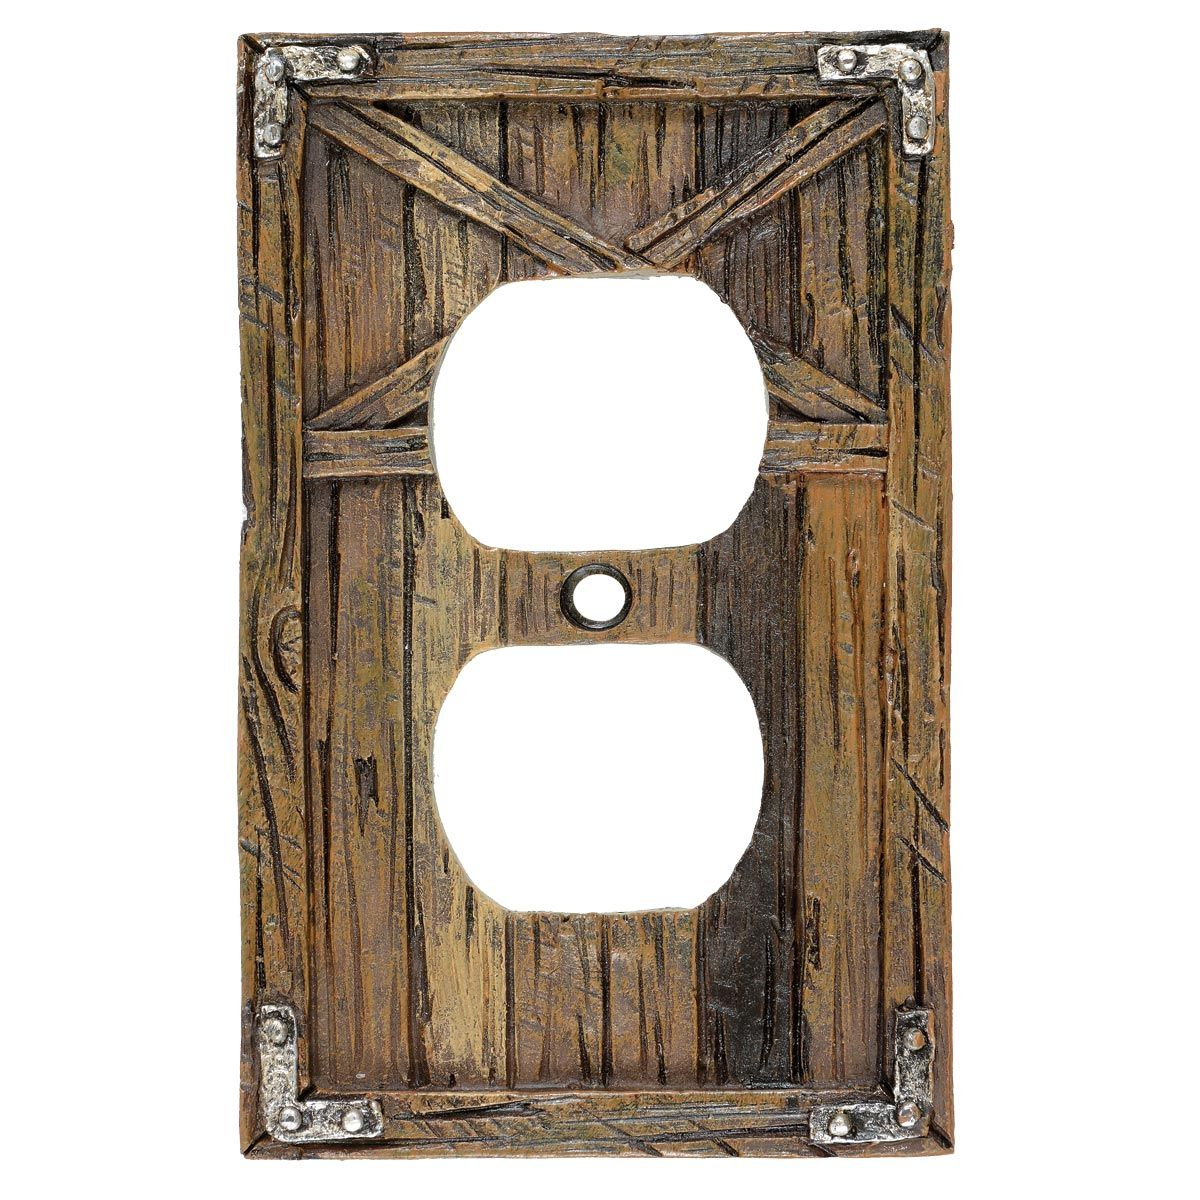 Rustic Barn Door Outlet Cover